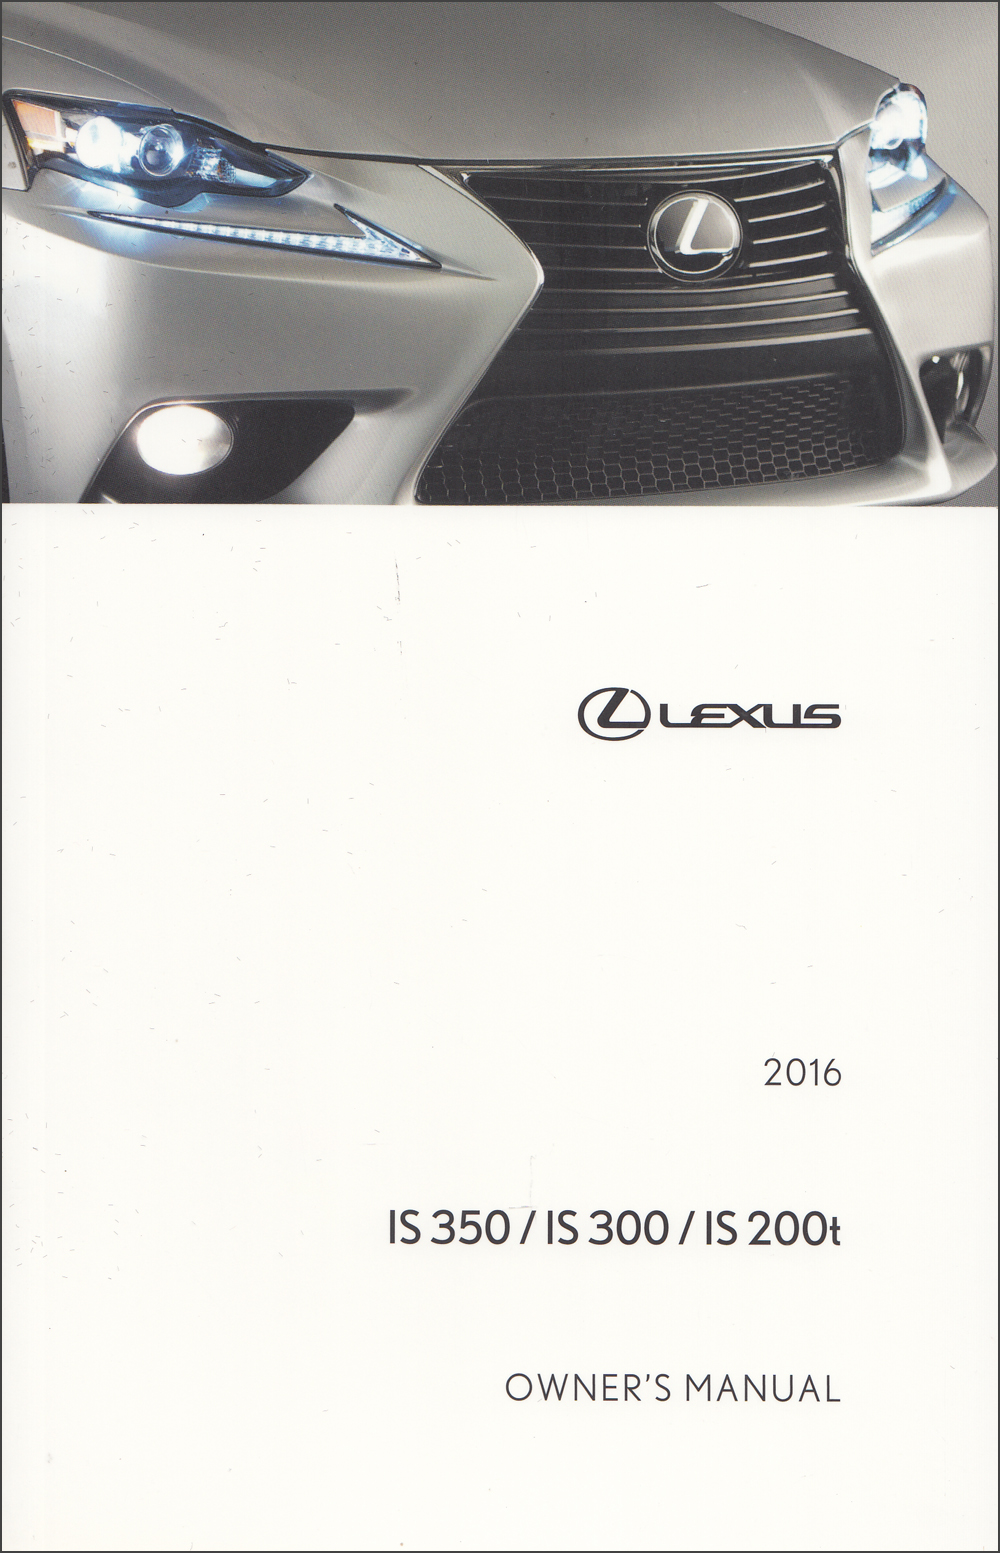 2016 Lexus IS Sedan Owner's Manual Original